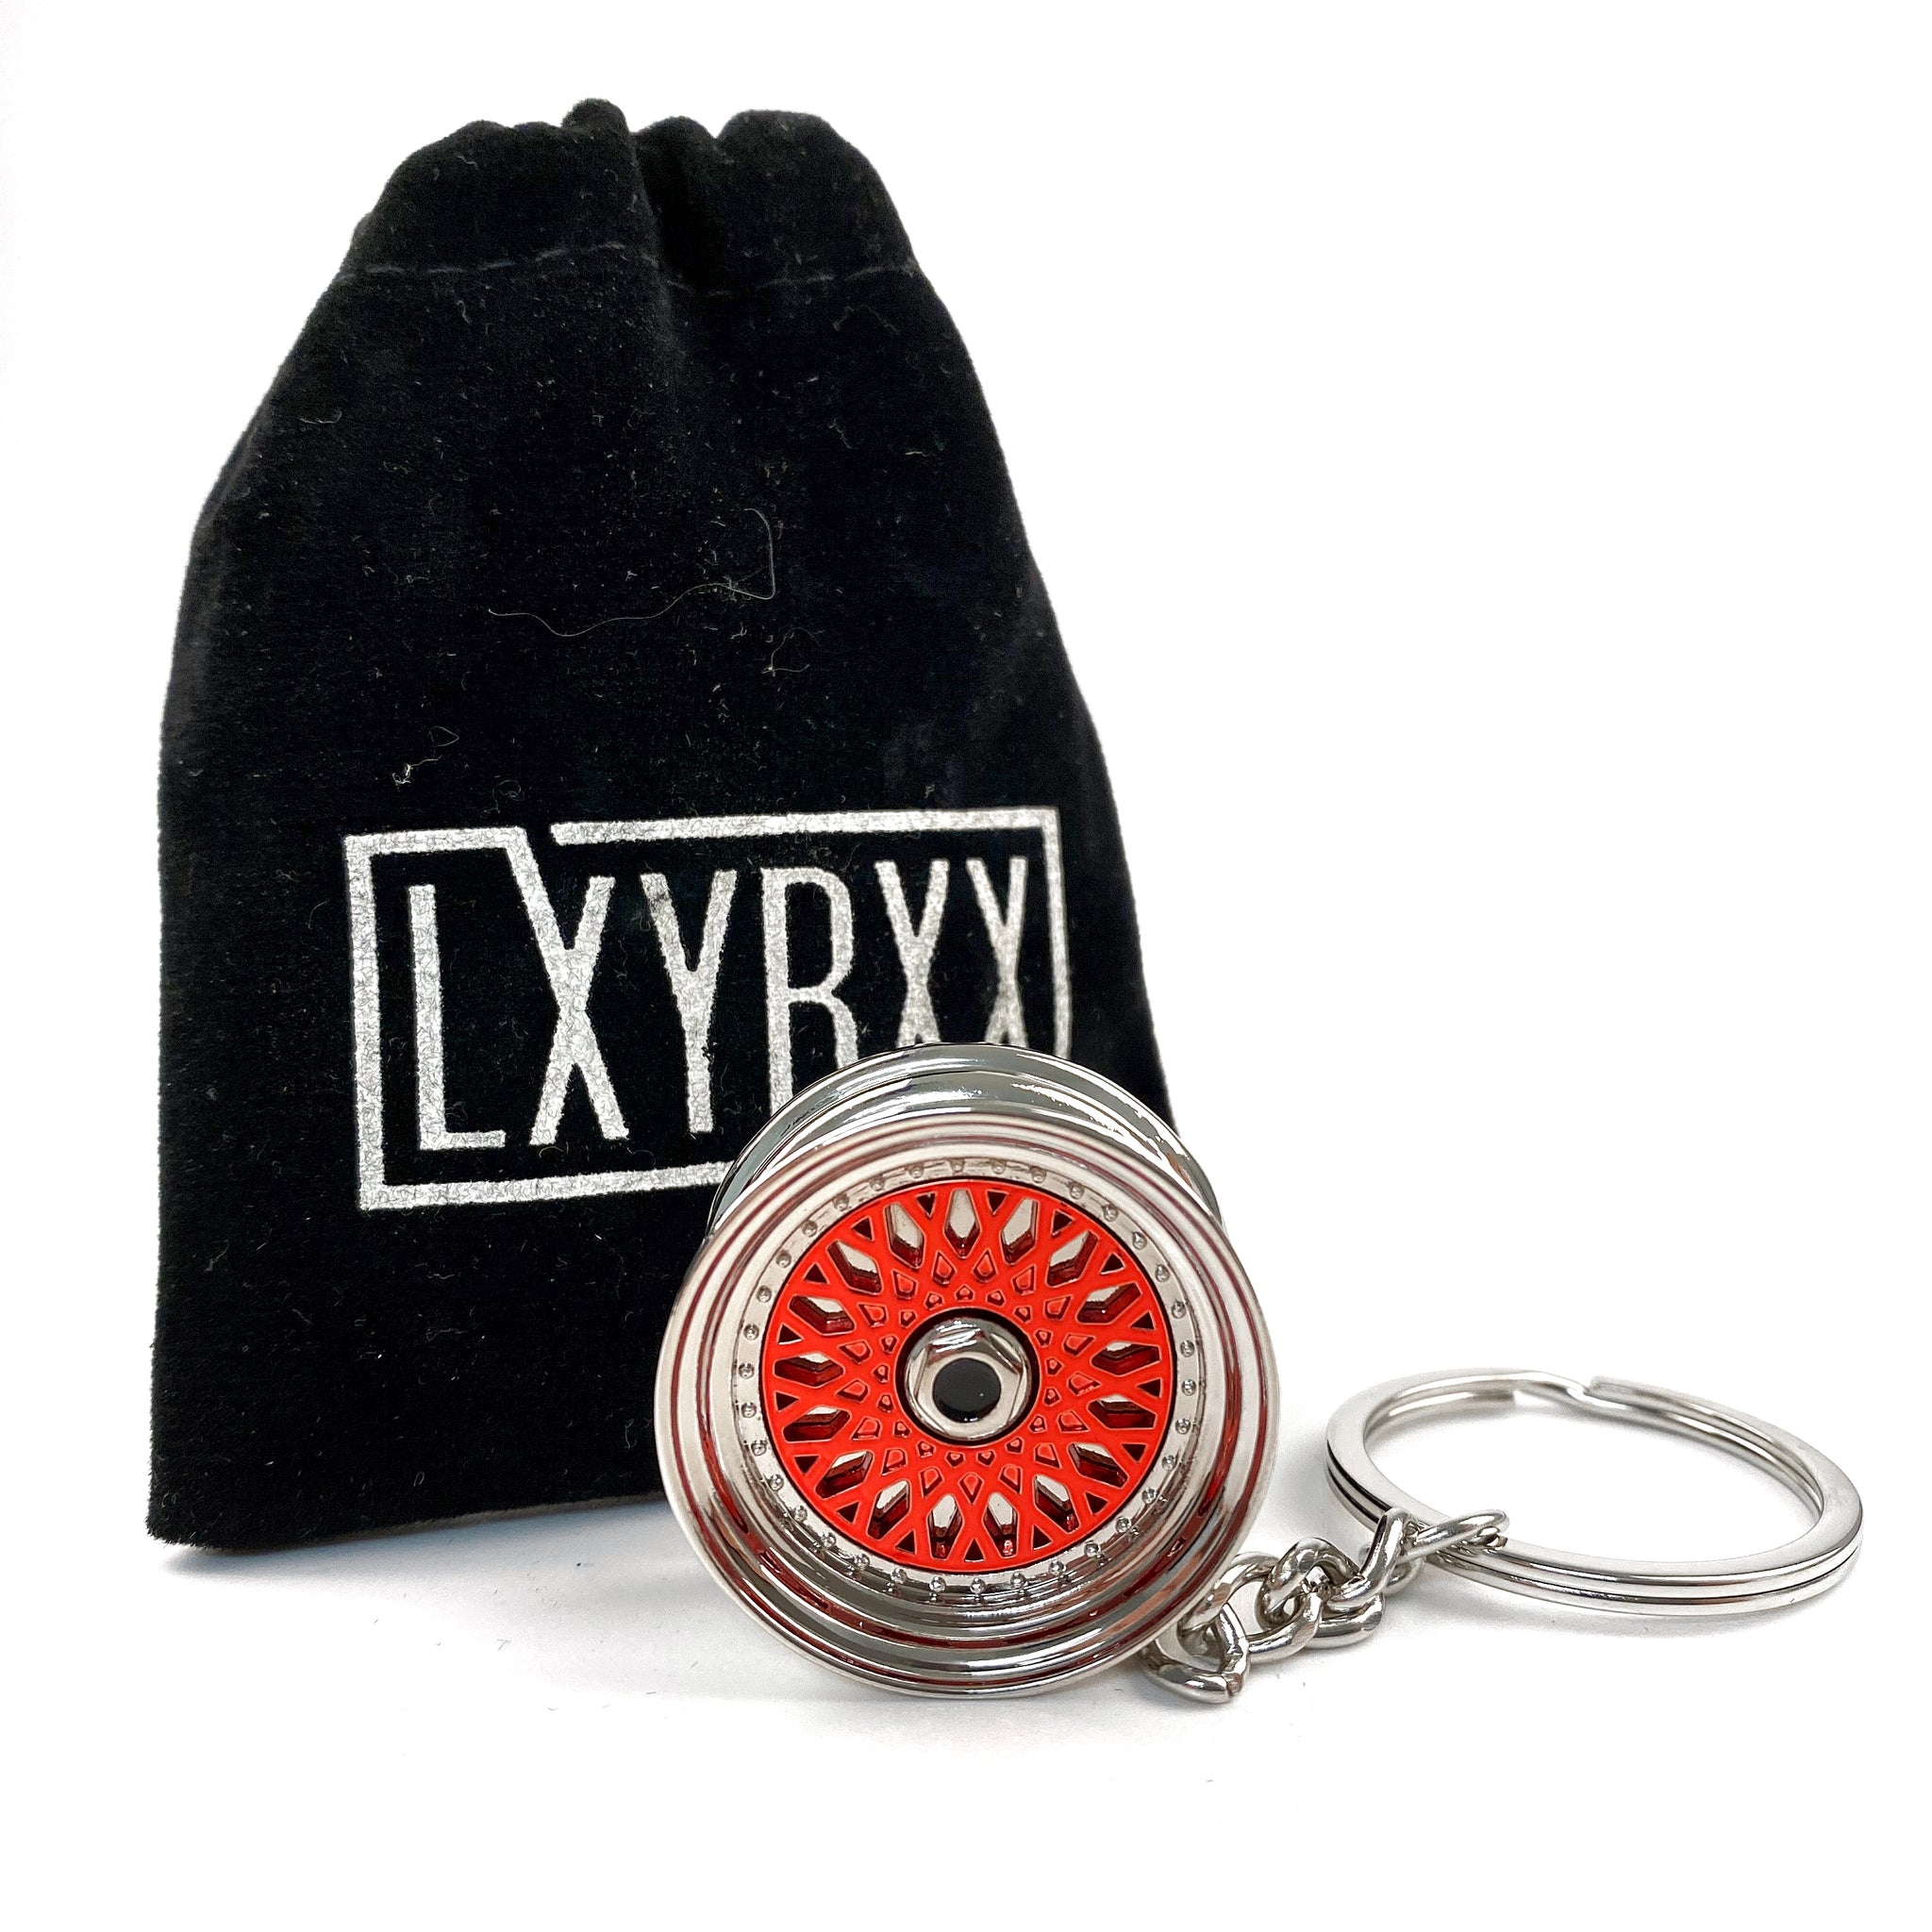 WHEEL WHORE MESH - Premium Key Ring